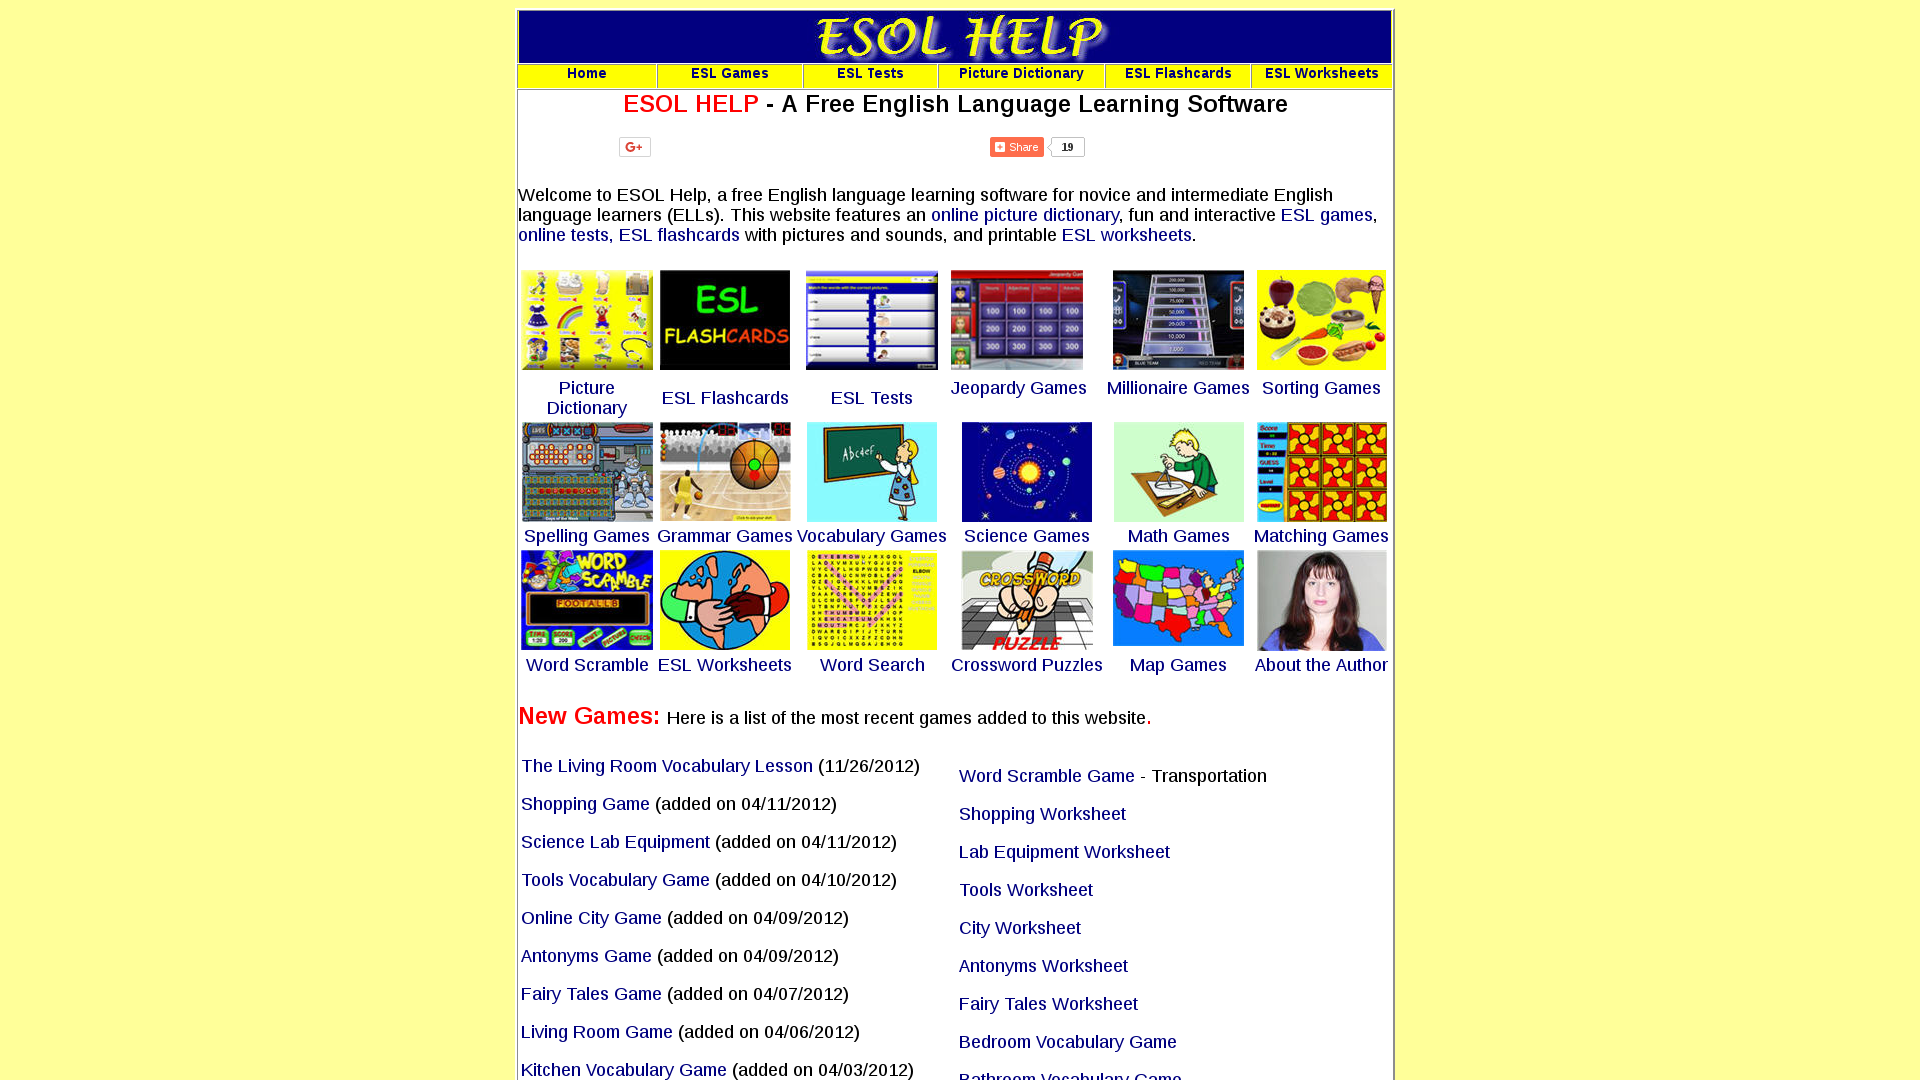 578kB, Sheppard Software Fun Free Online Learning Games And Activities